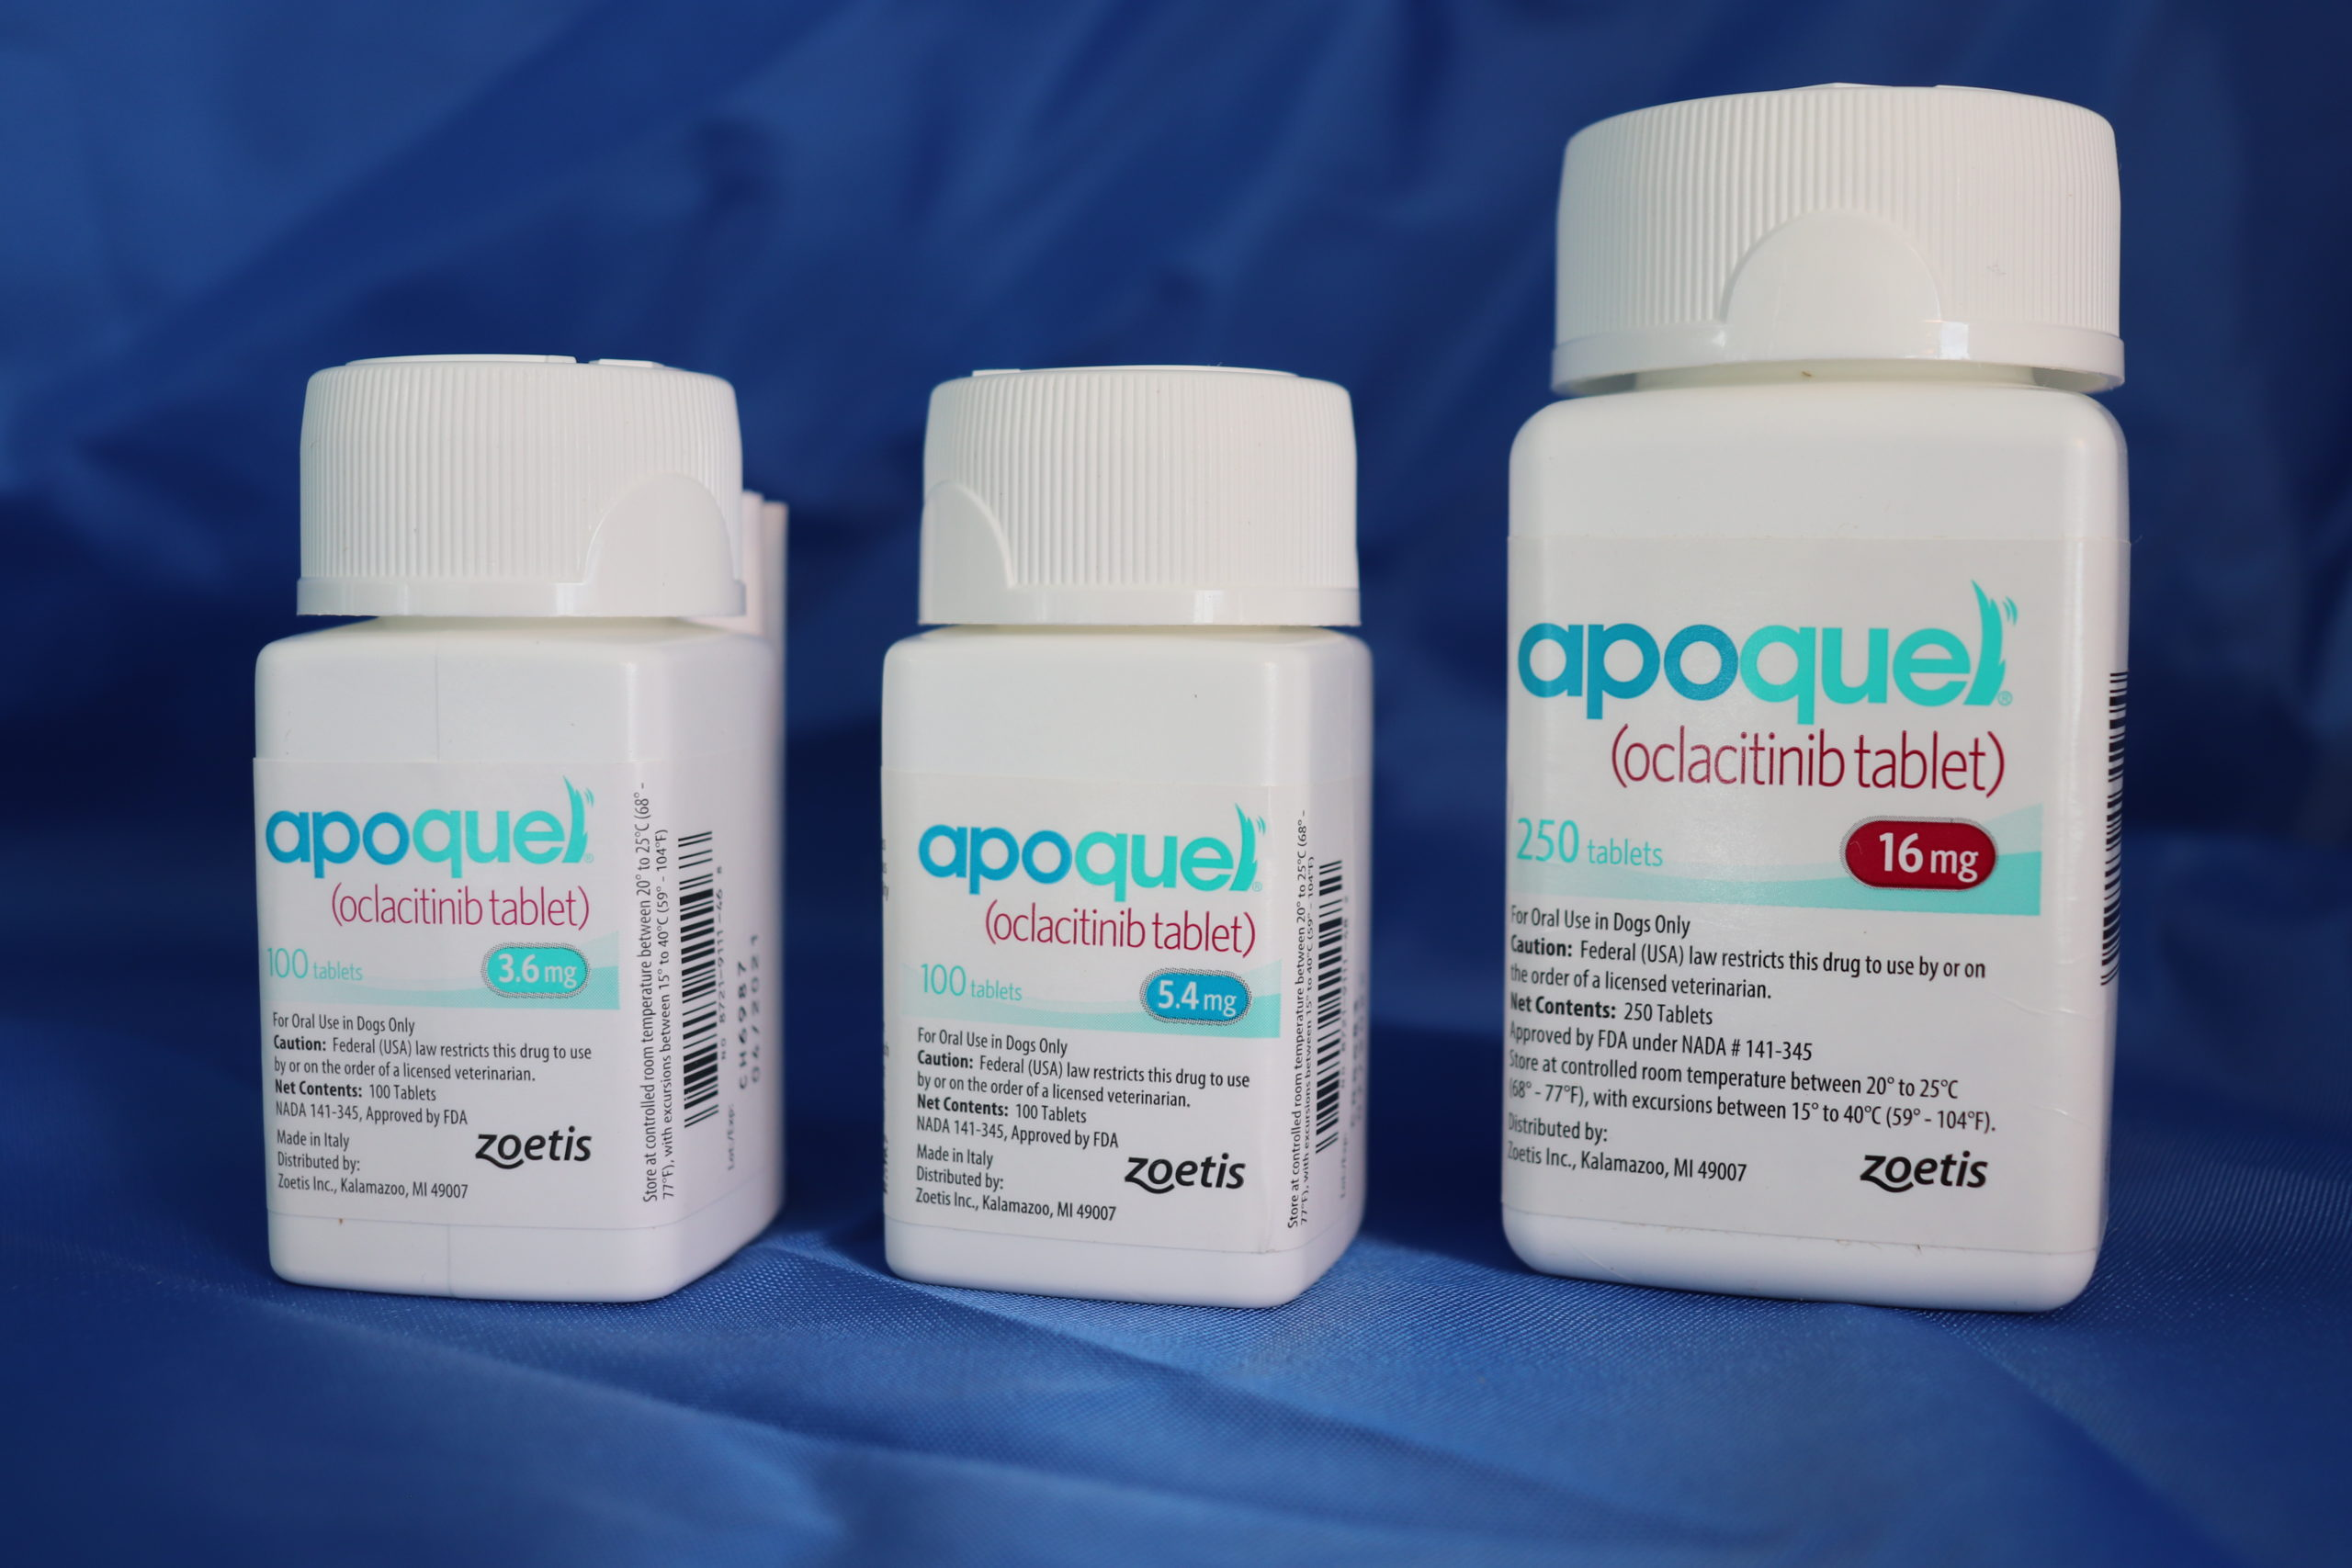 Apoquel  (Rx Refills only)